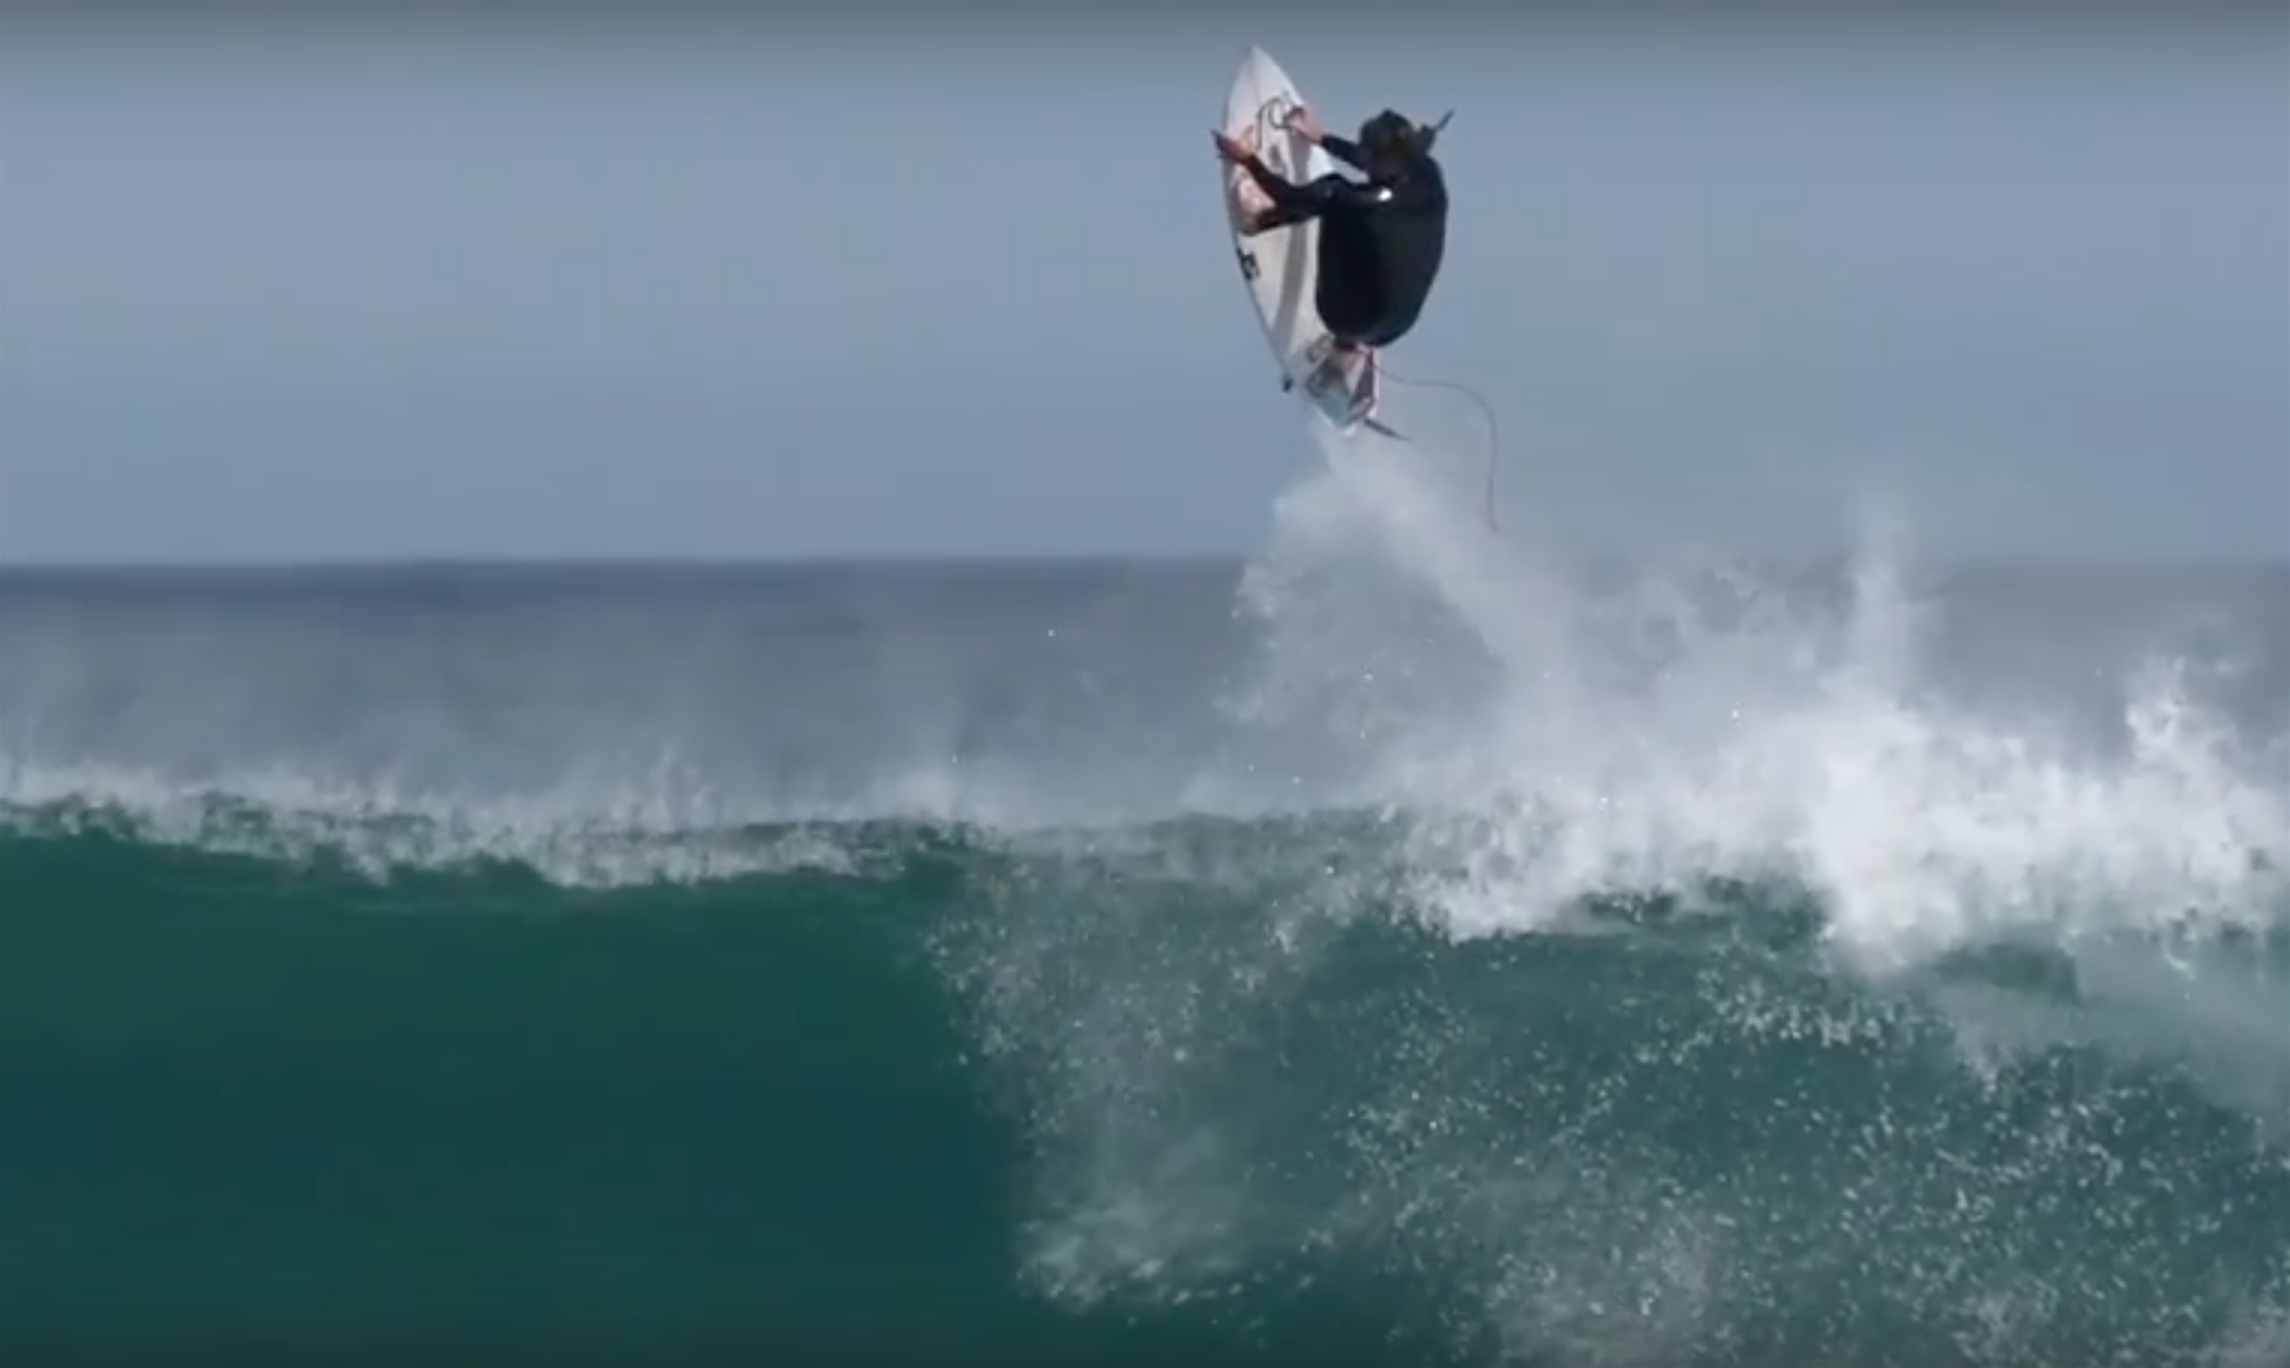 Mikey Wright in 'The Wingman'